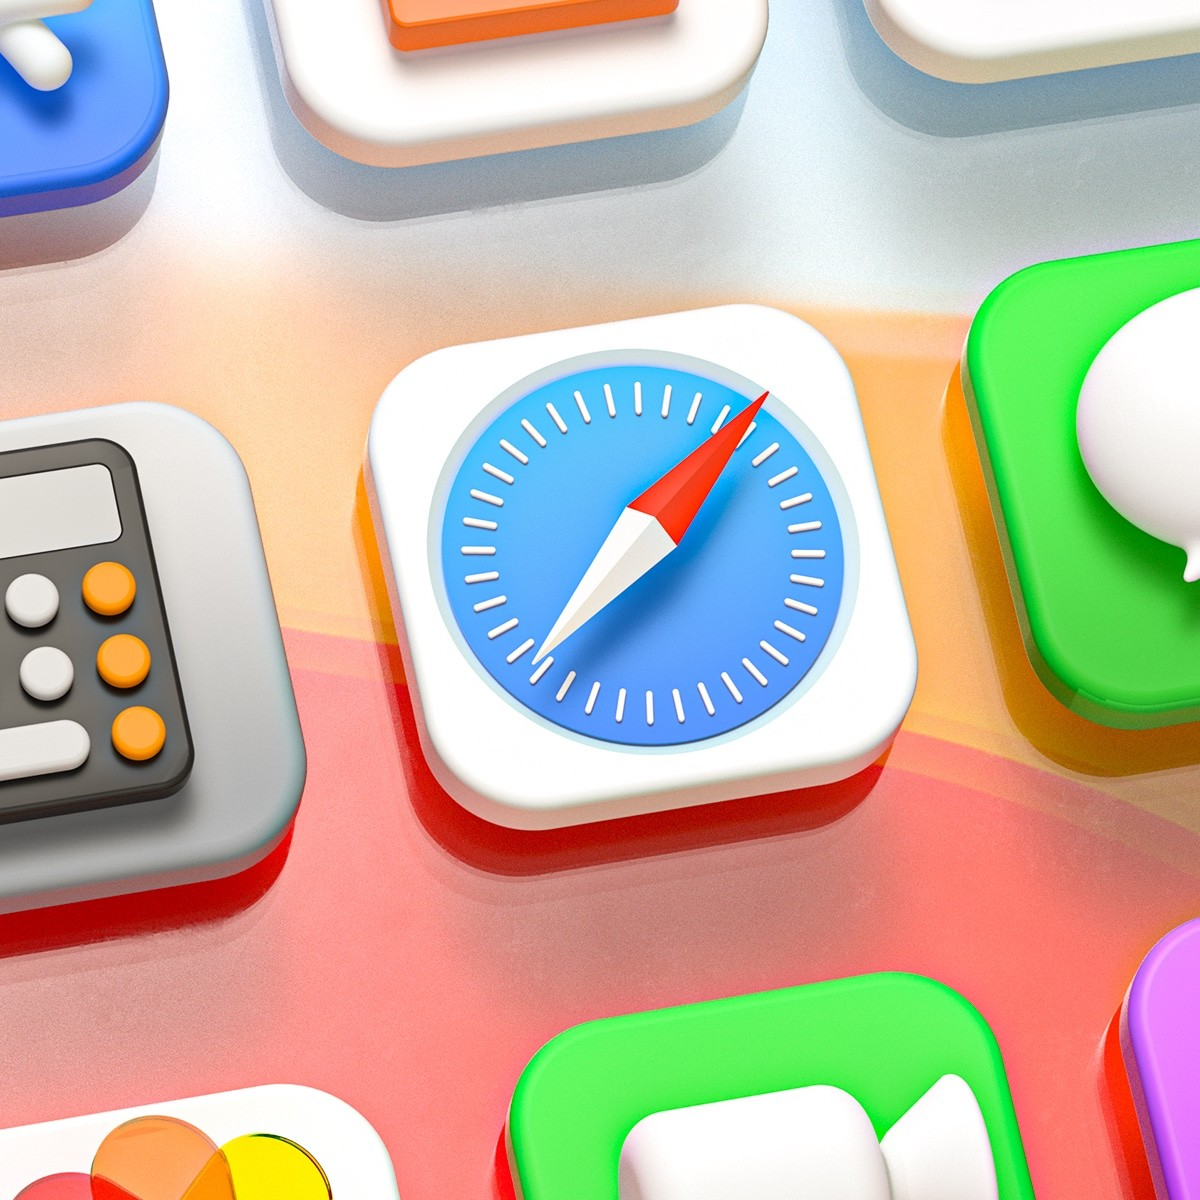 Best iOS 14 app icon packs to customize your iPhone Home Screen